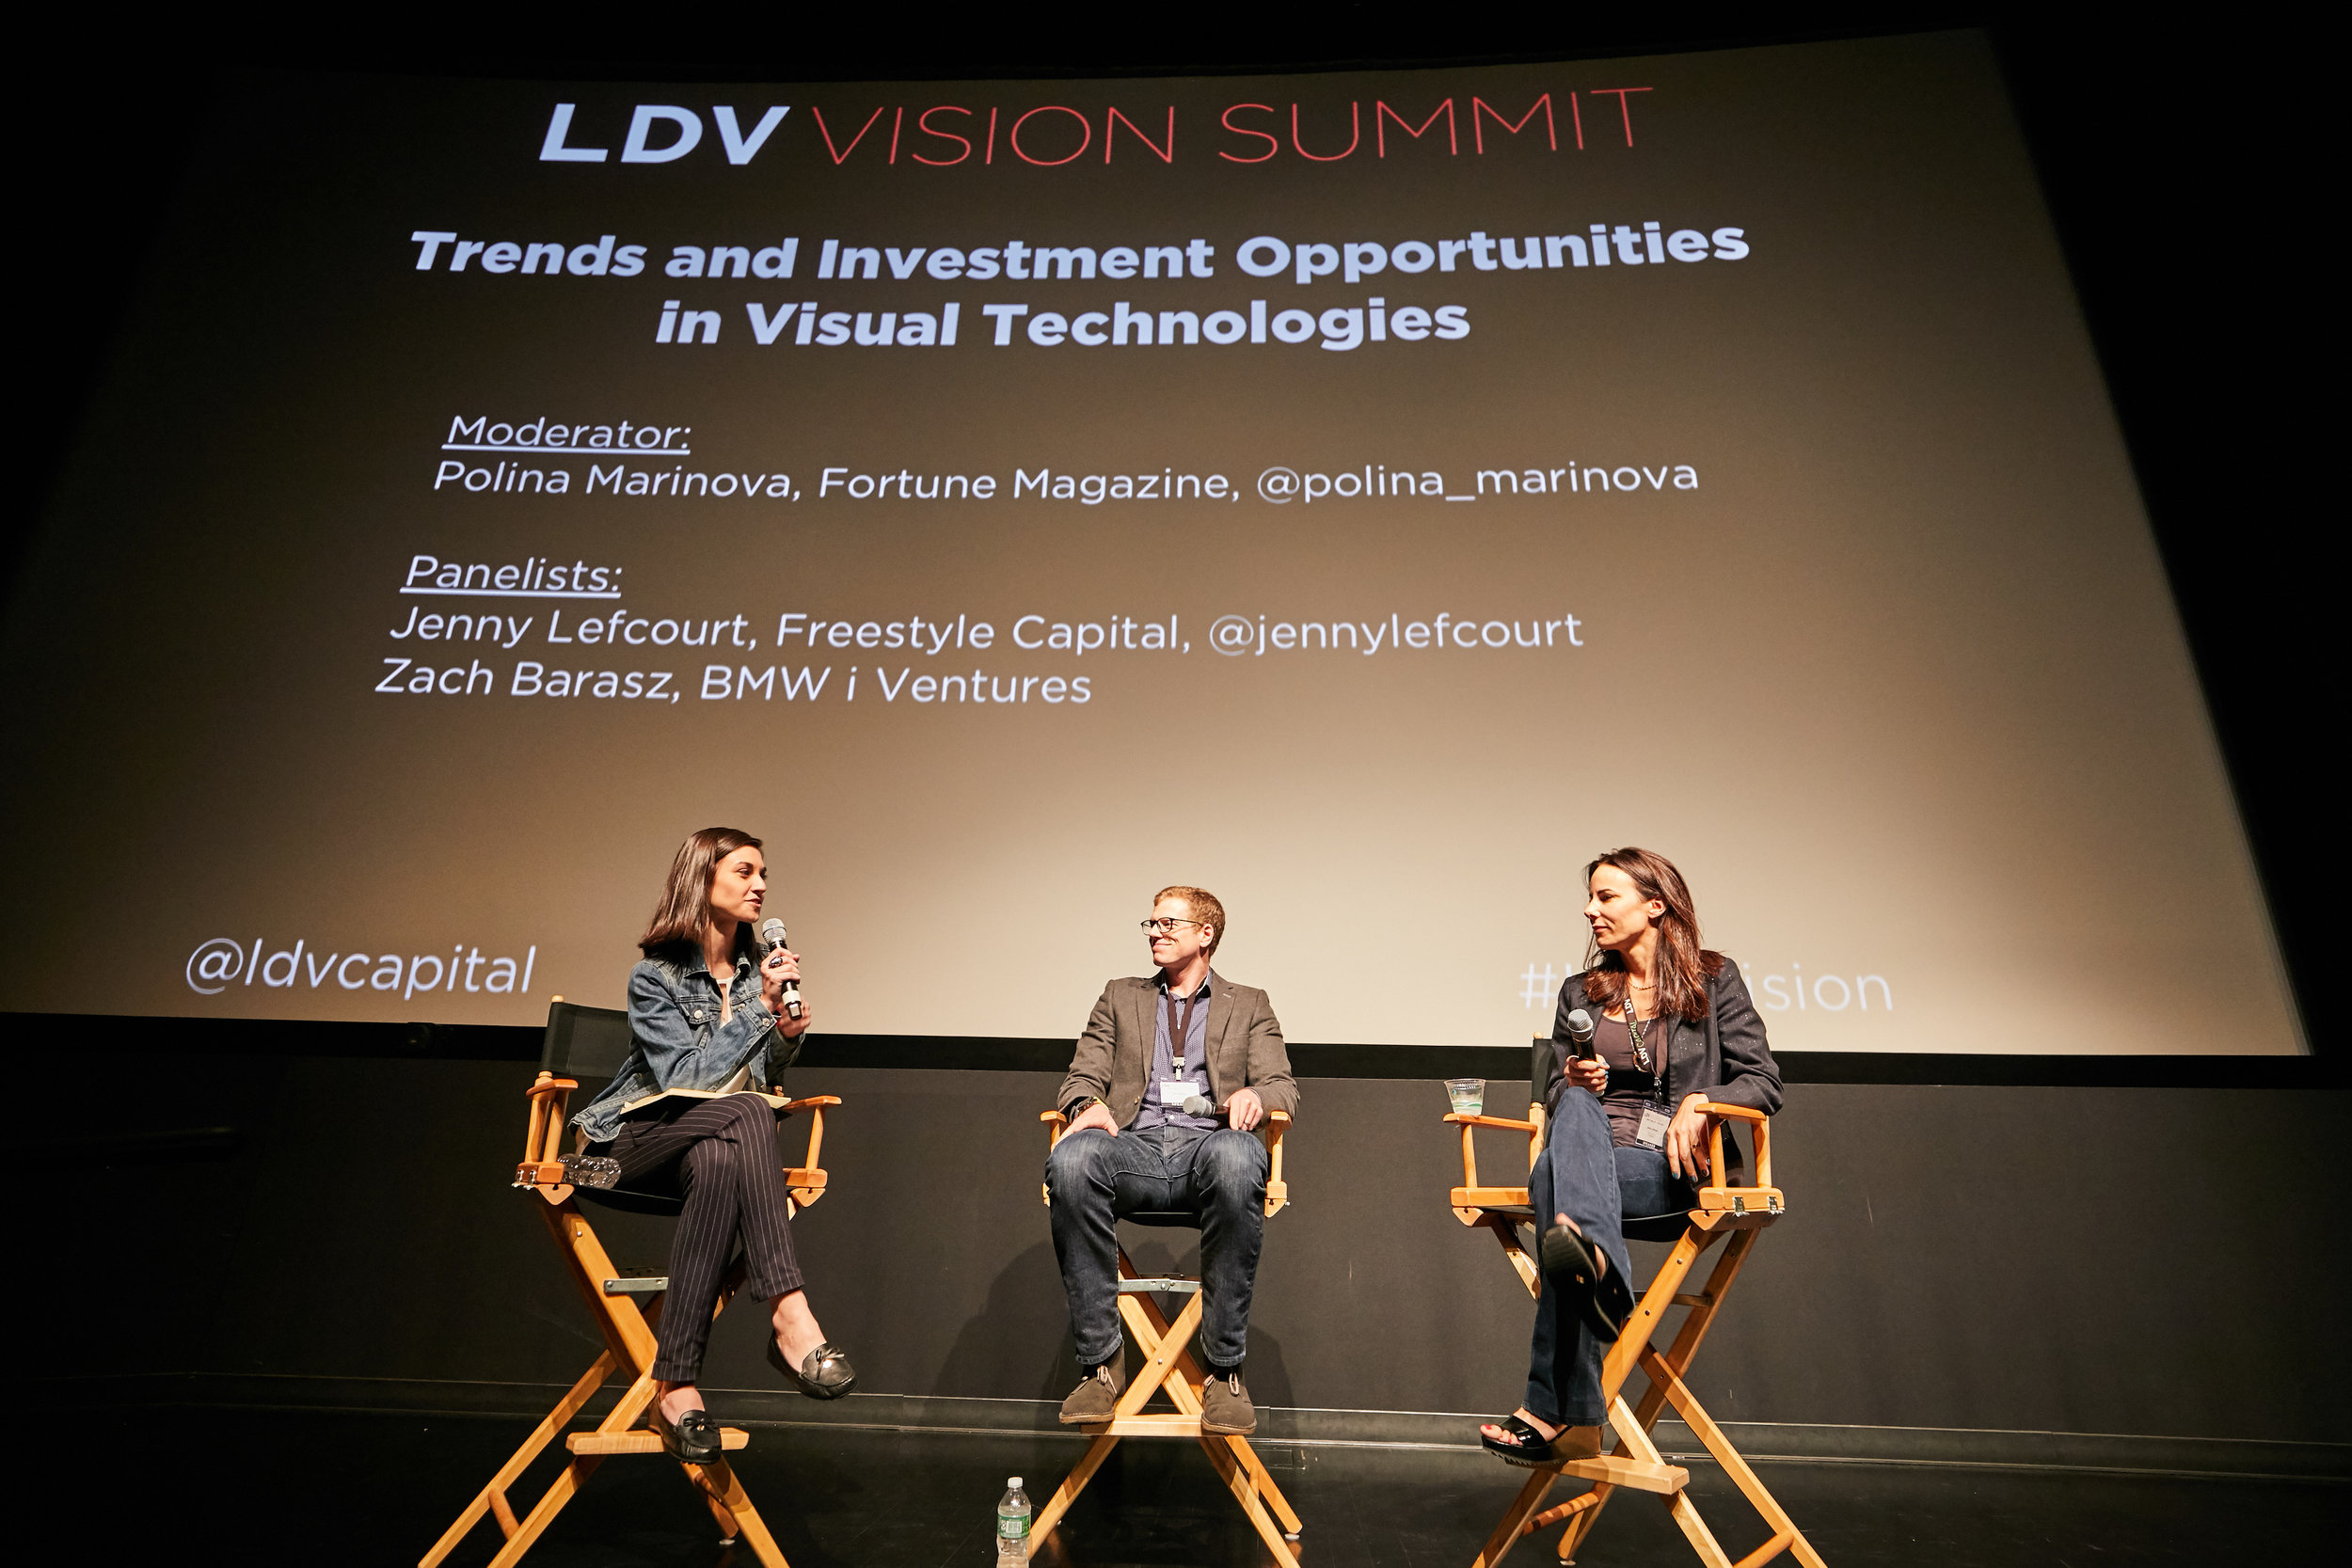 Panel Day 1: Trends in Visual Technology Investing [L to R] Polina Marinova, Fortune Magazine, Zach Barasz, BMWi Ventures, Jenny Lefcourt, Freestyle Capital  ©Robert Wright/LDV Vision Summit 2018